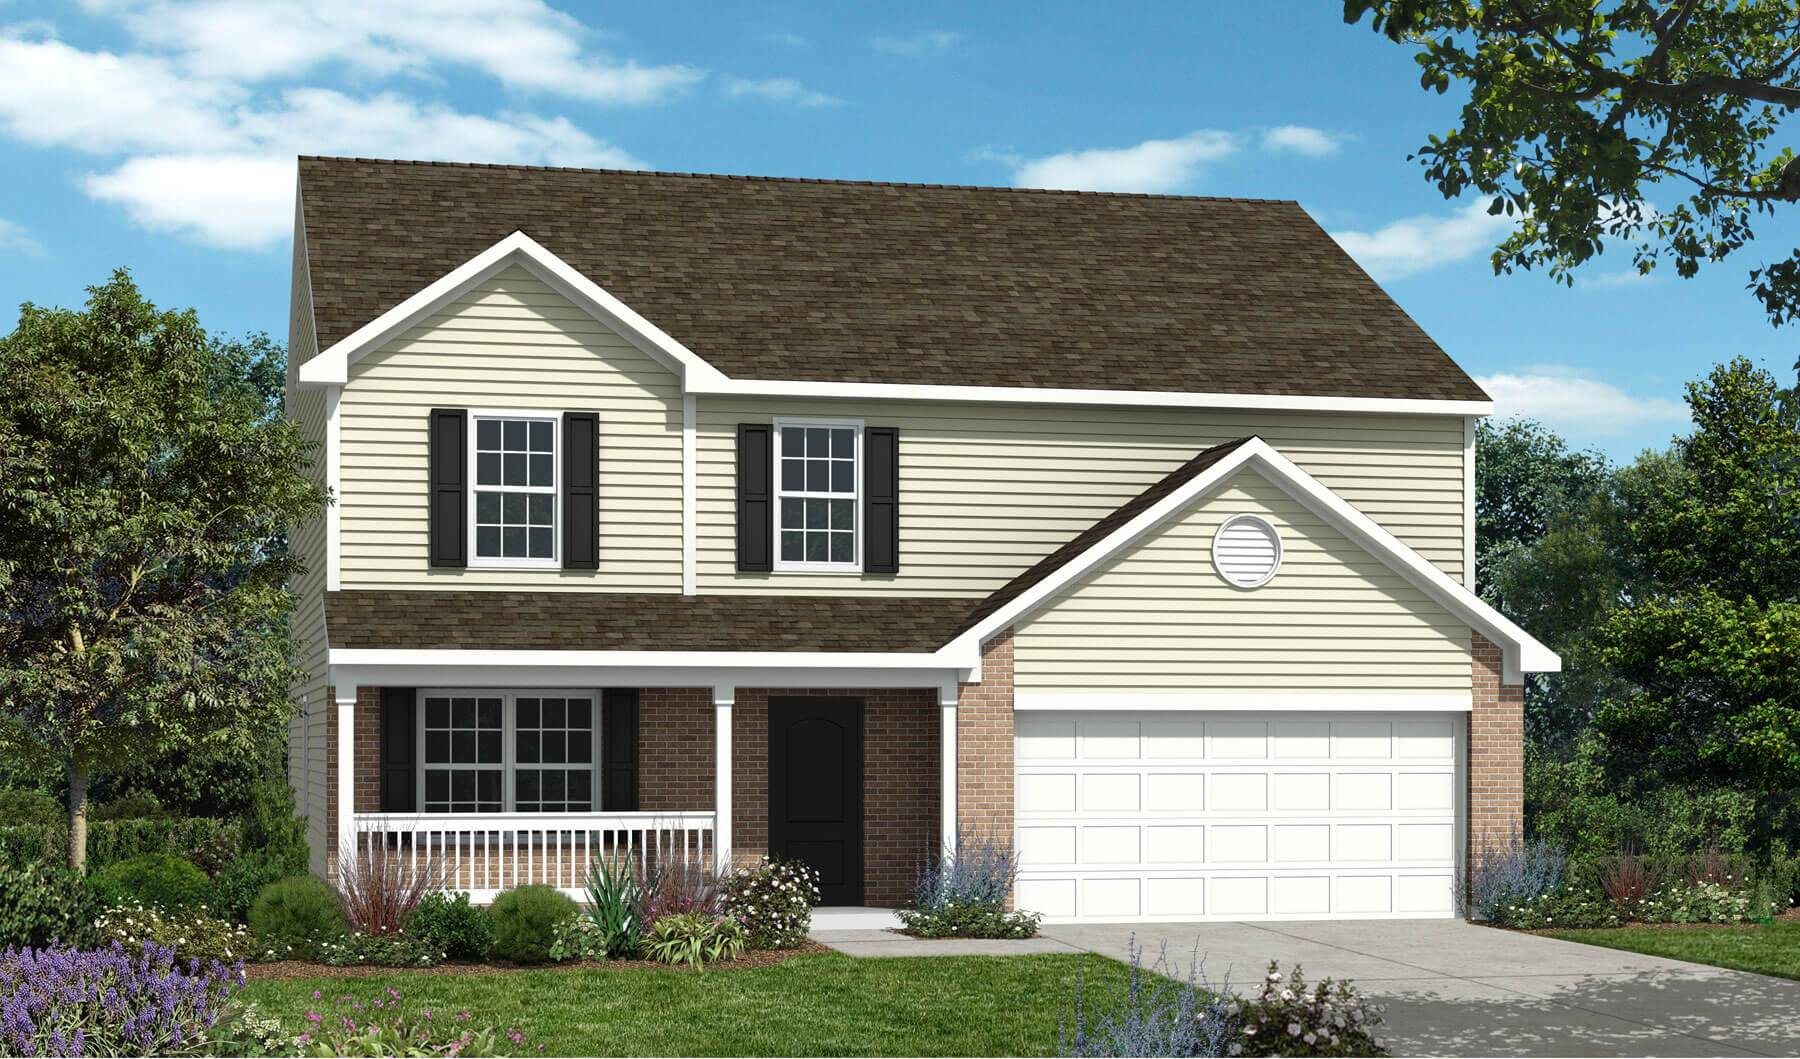 Delicieux Cardinal Village In Indianapolis, IN, New Homes U0026 Floor Plans By Westport  Homes Of Indianapolis